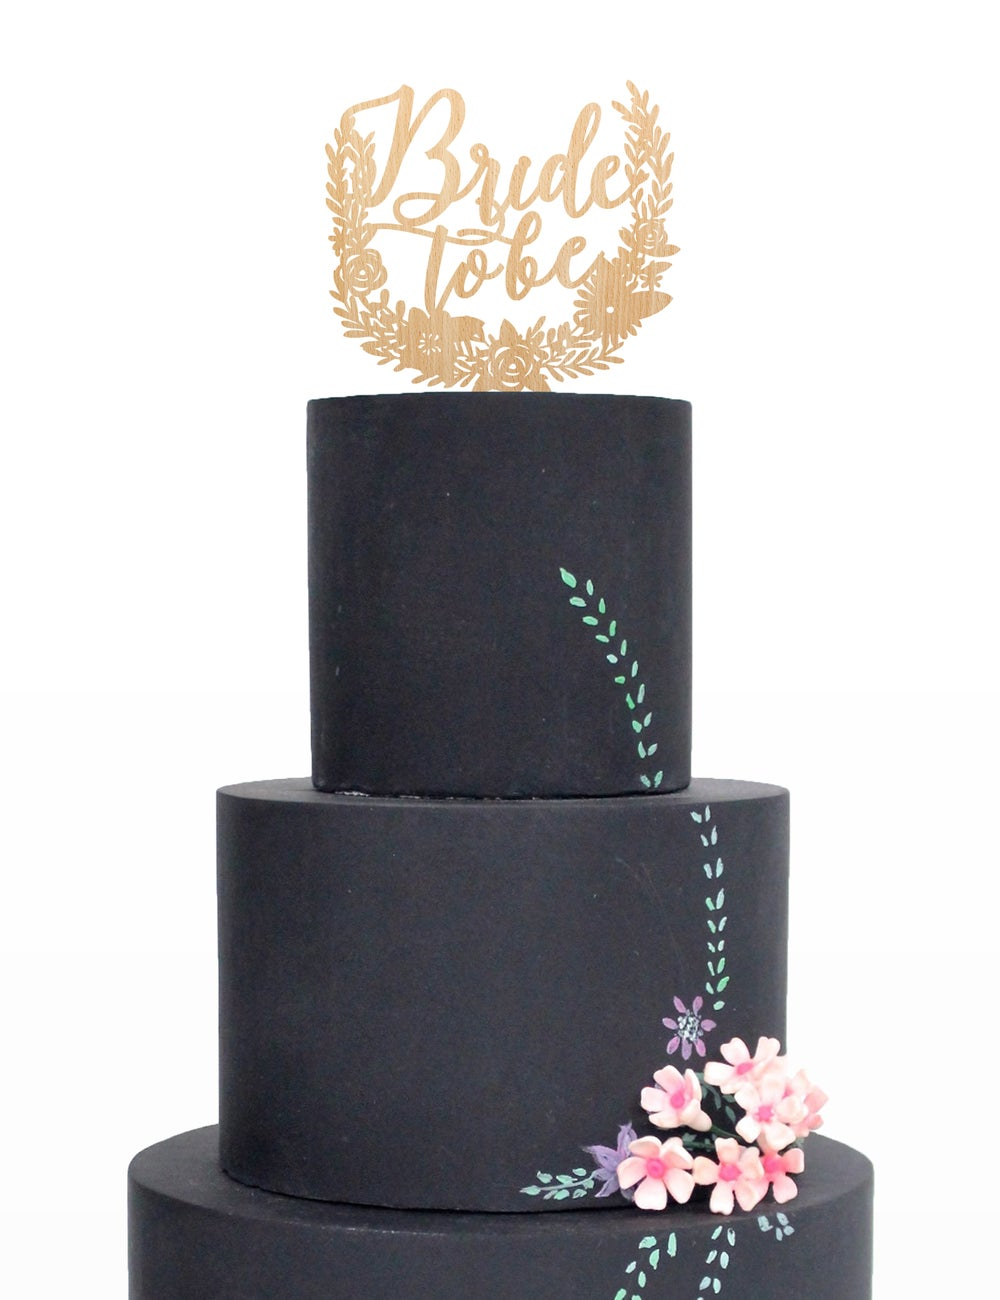 Image of Boho Bride to Be Cake Topper